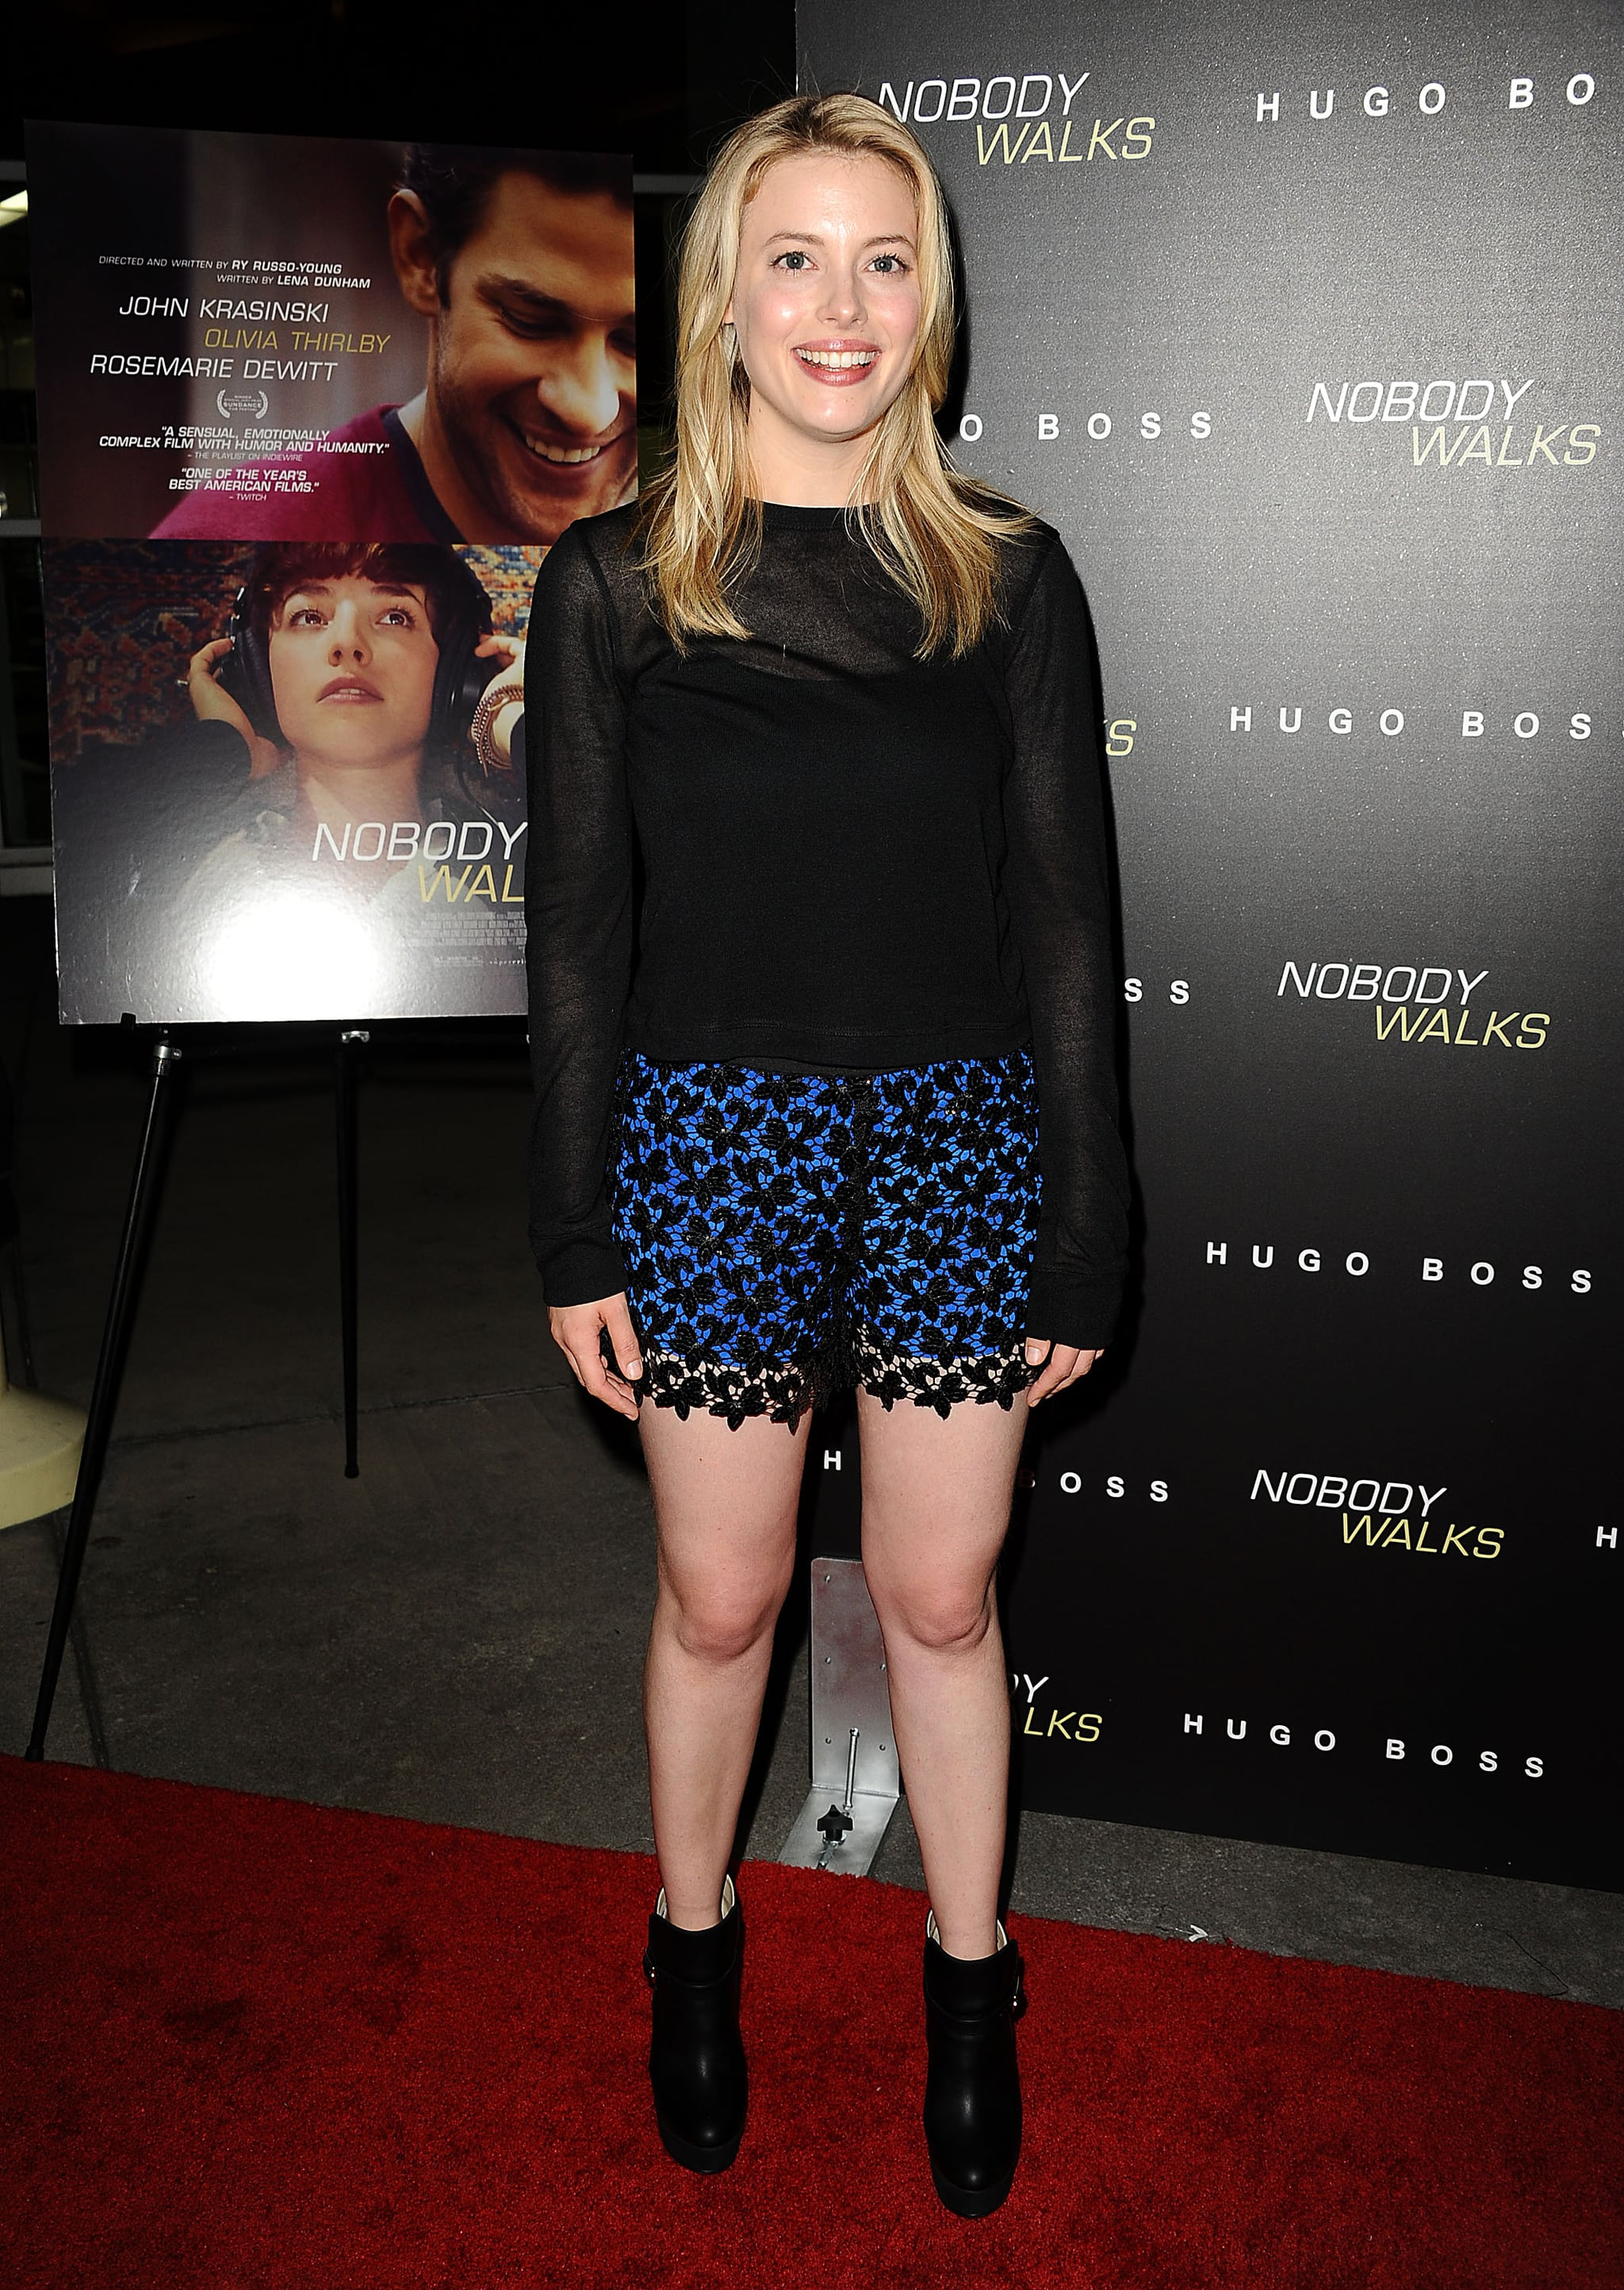 Gillian Jacobs showed some leg at the Nobody Walks premiere.